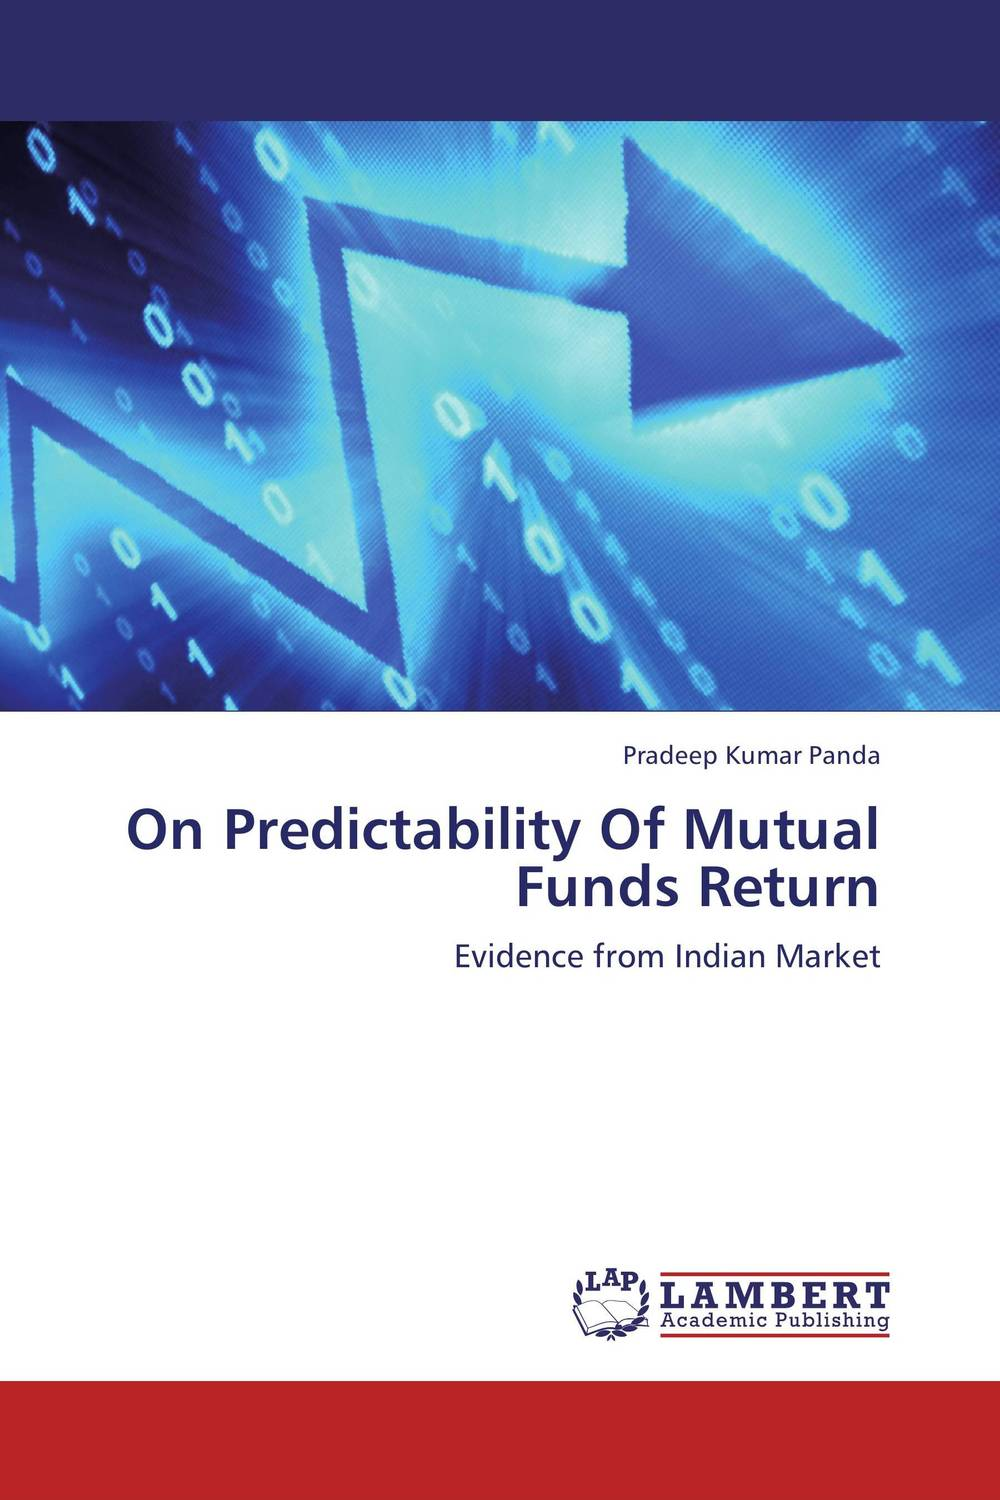 On Predictability Of Mutual Funds Return our mutual friend